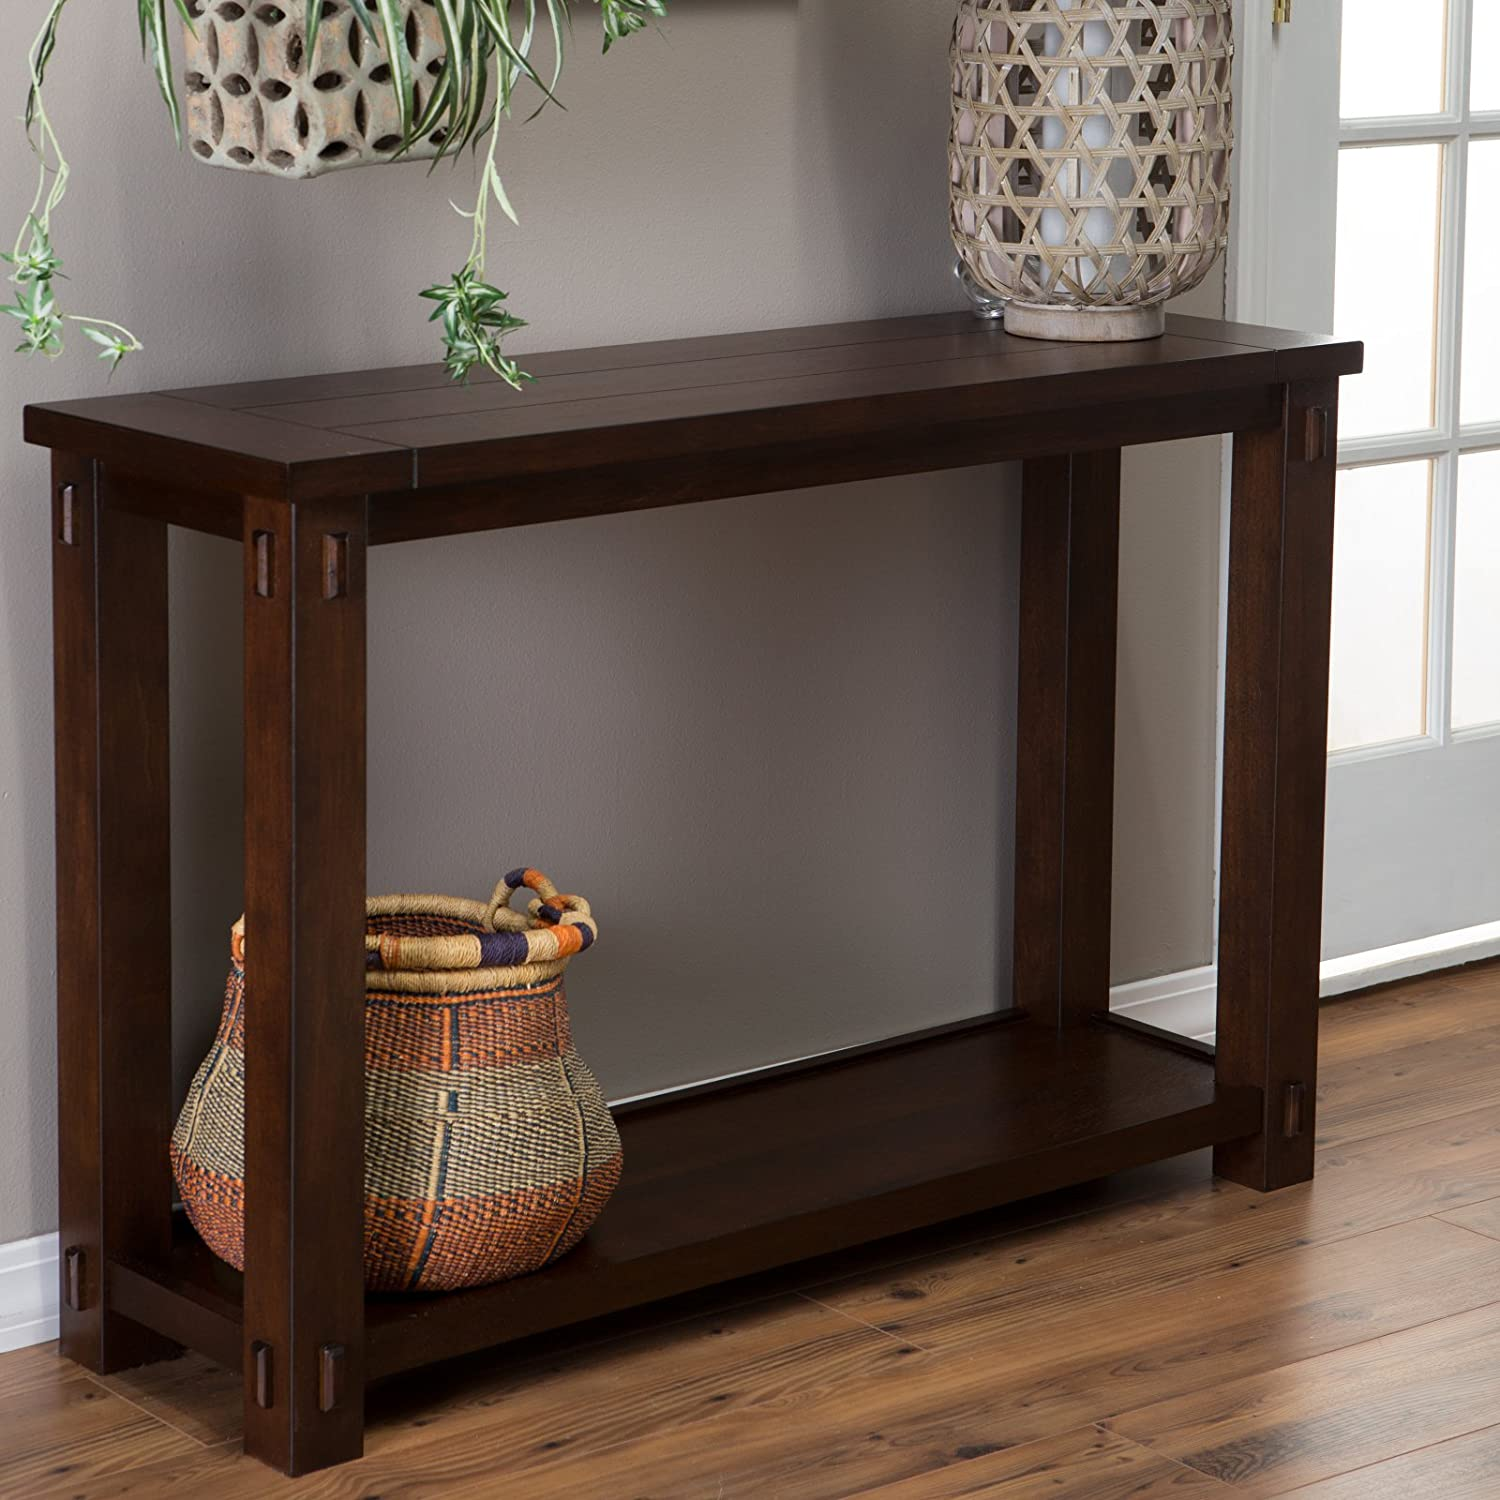 Amazon Belham Living Bartlett Console Table Kitchen & Dining